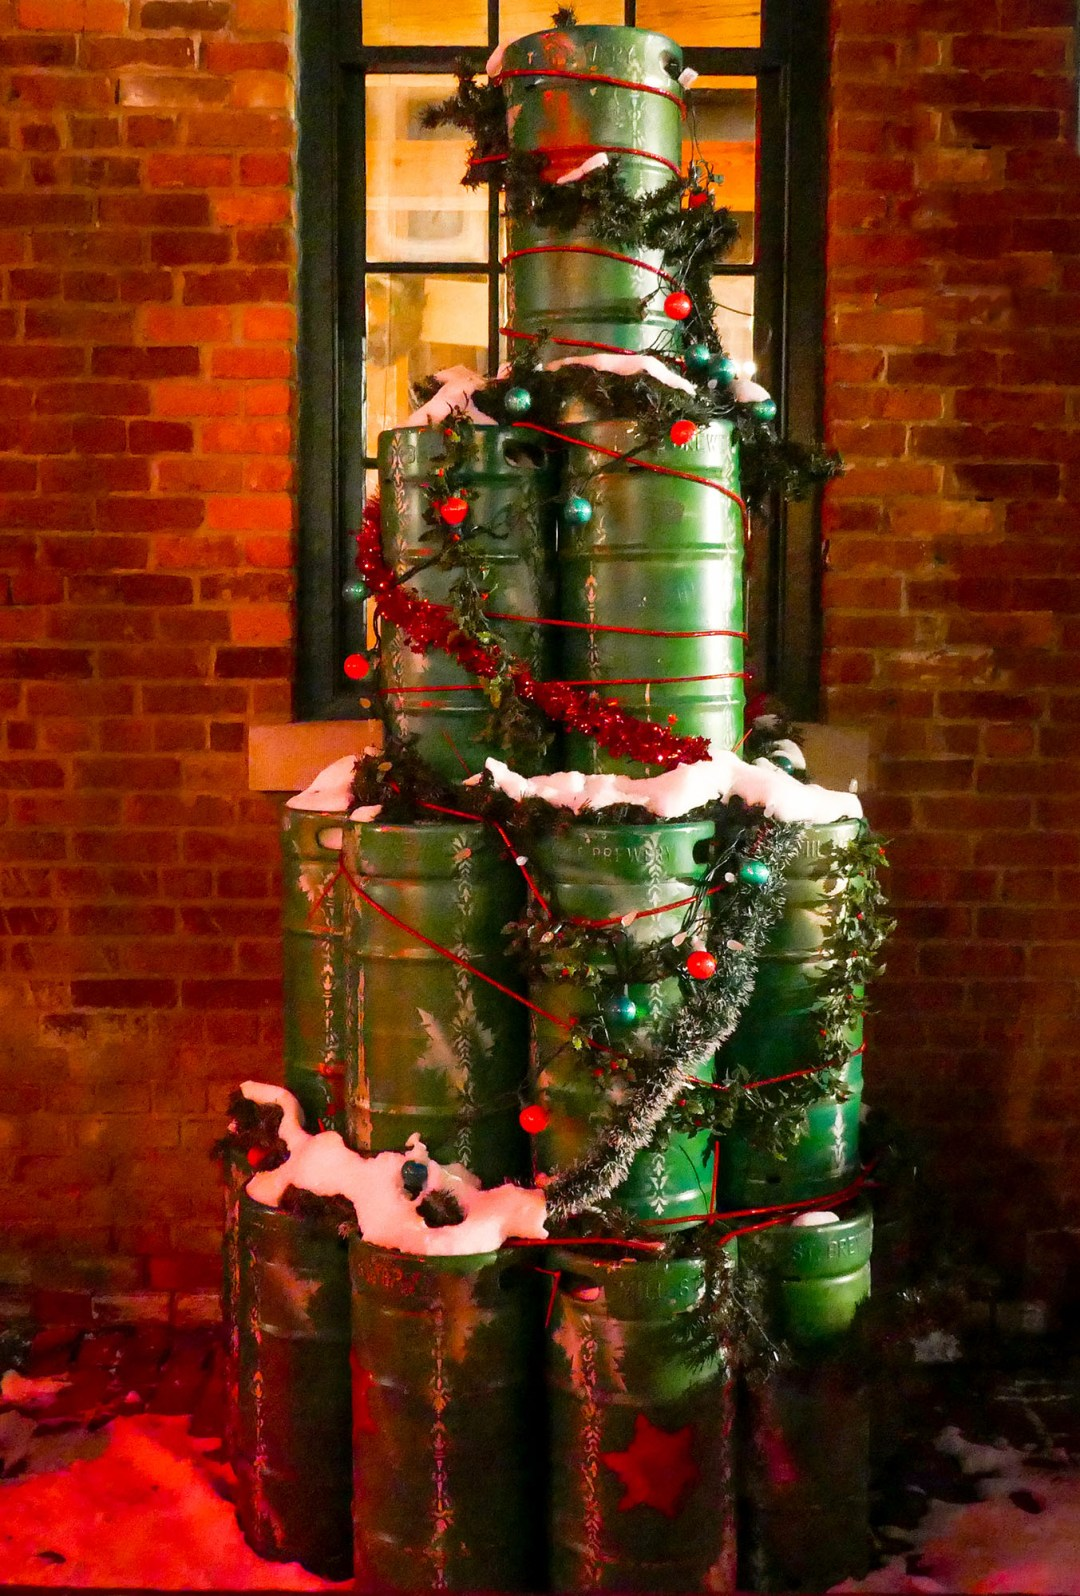 Kegs dressed for Christmas at the Toronto Christmas Market for boomervoice